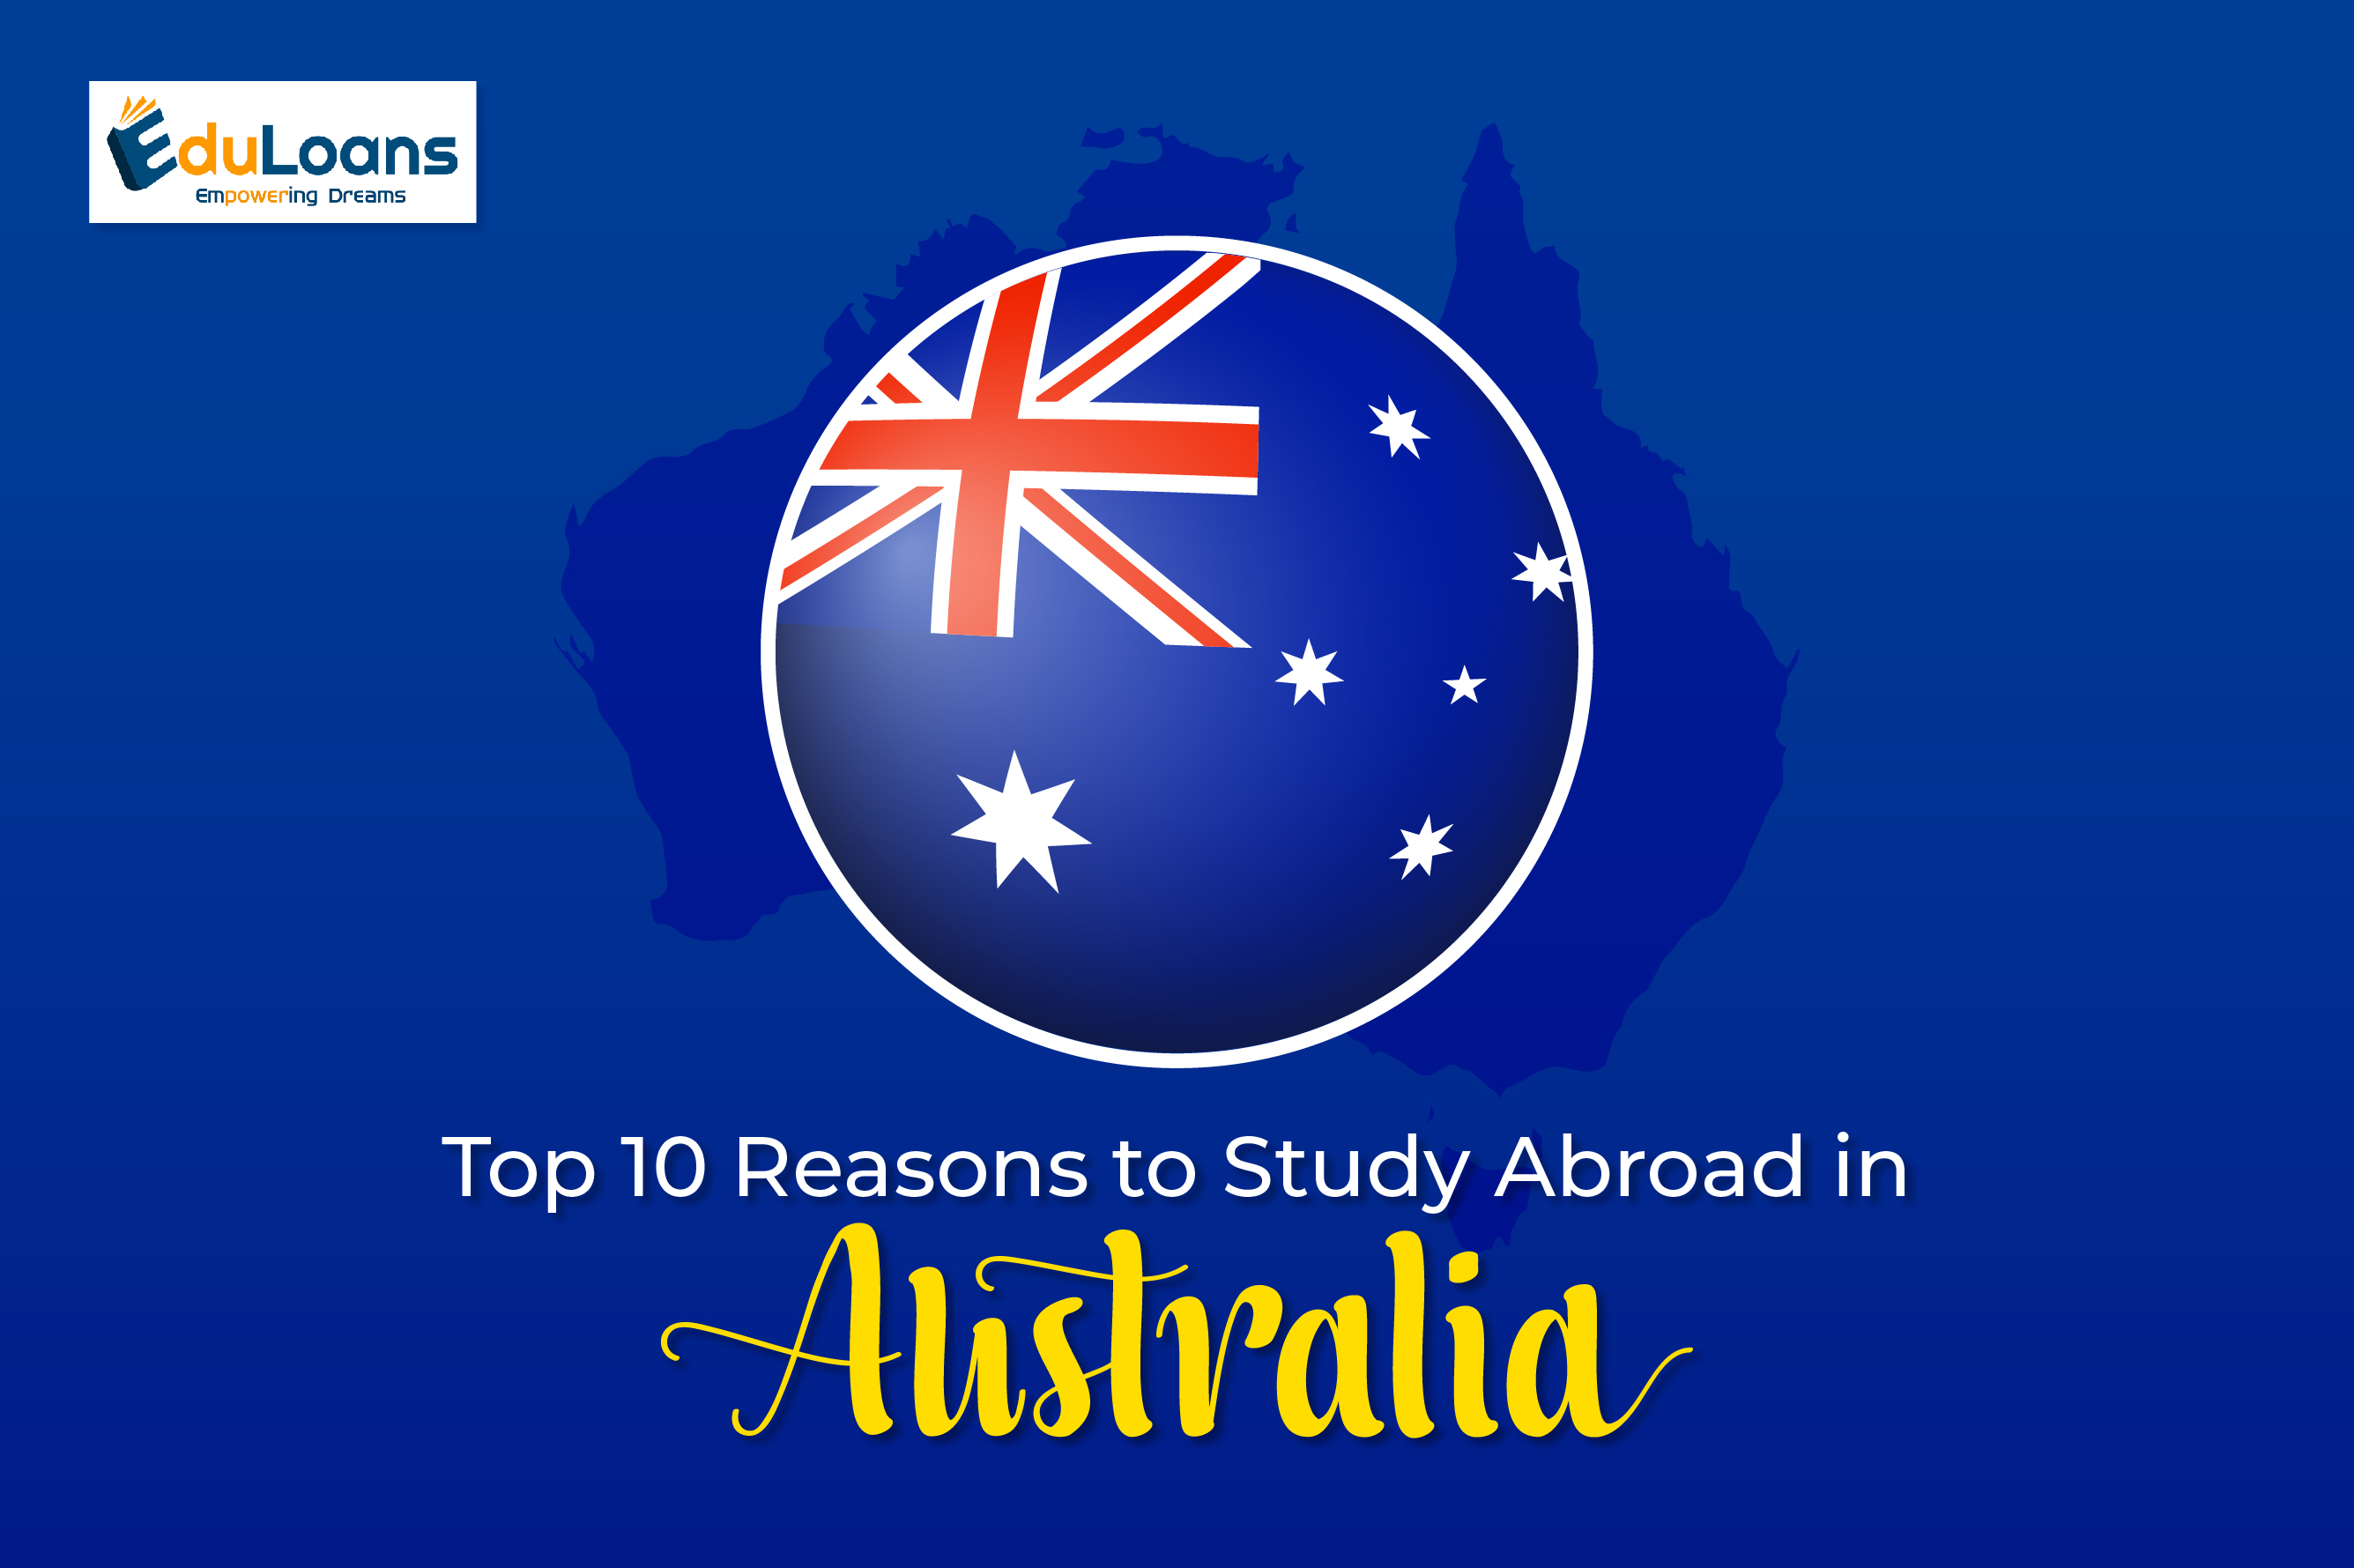 Top 10 Reasons to Study Abroad in Australia